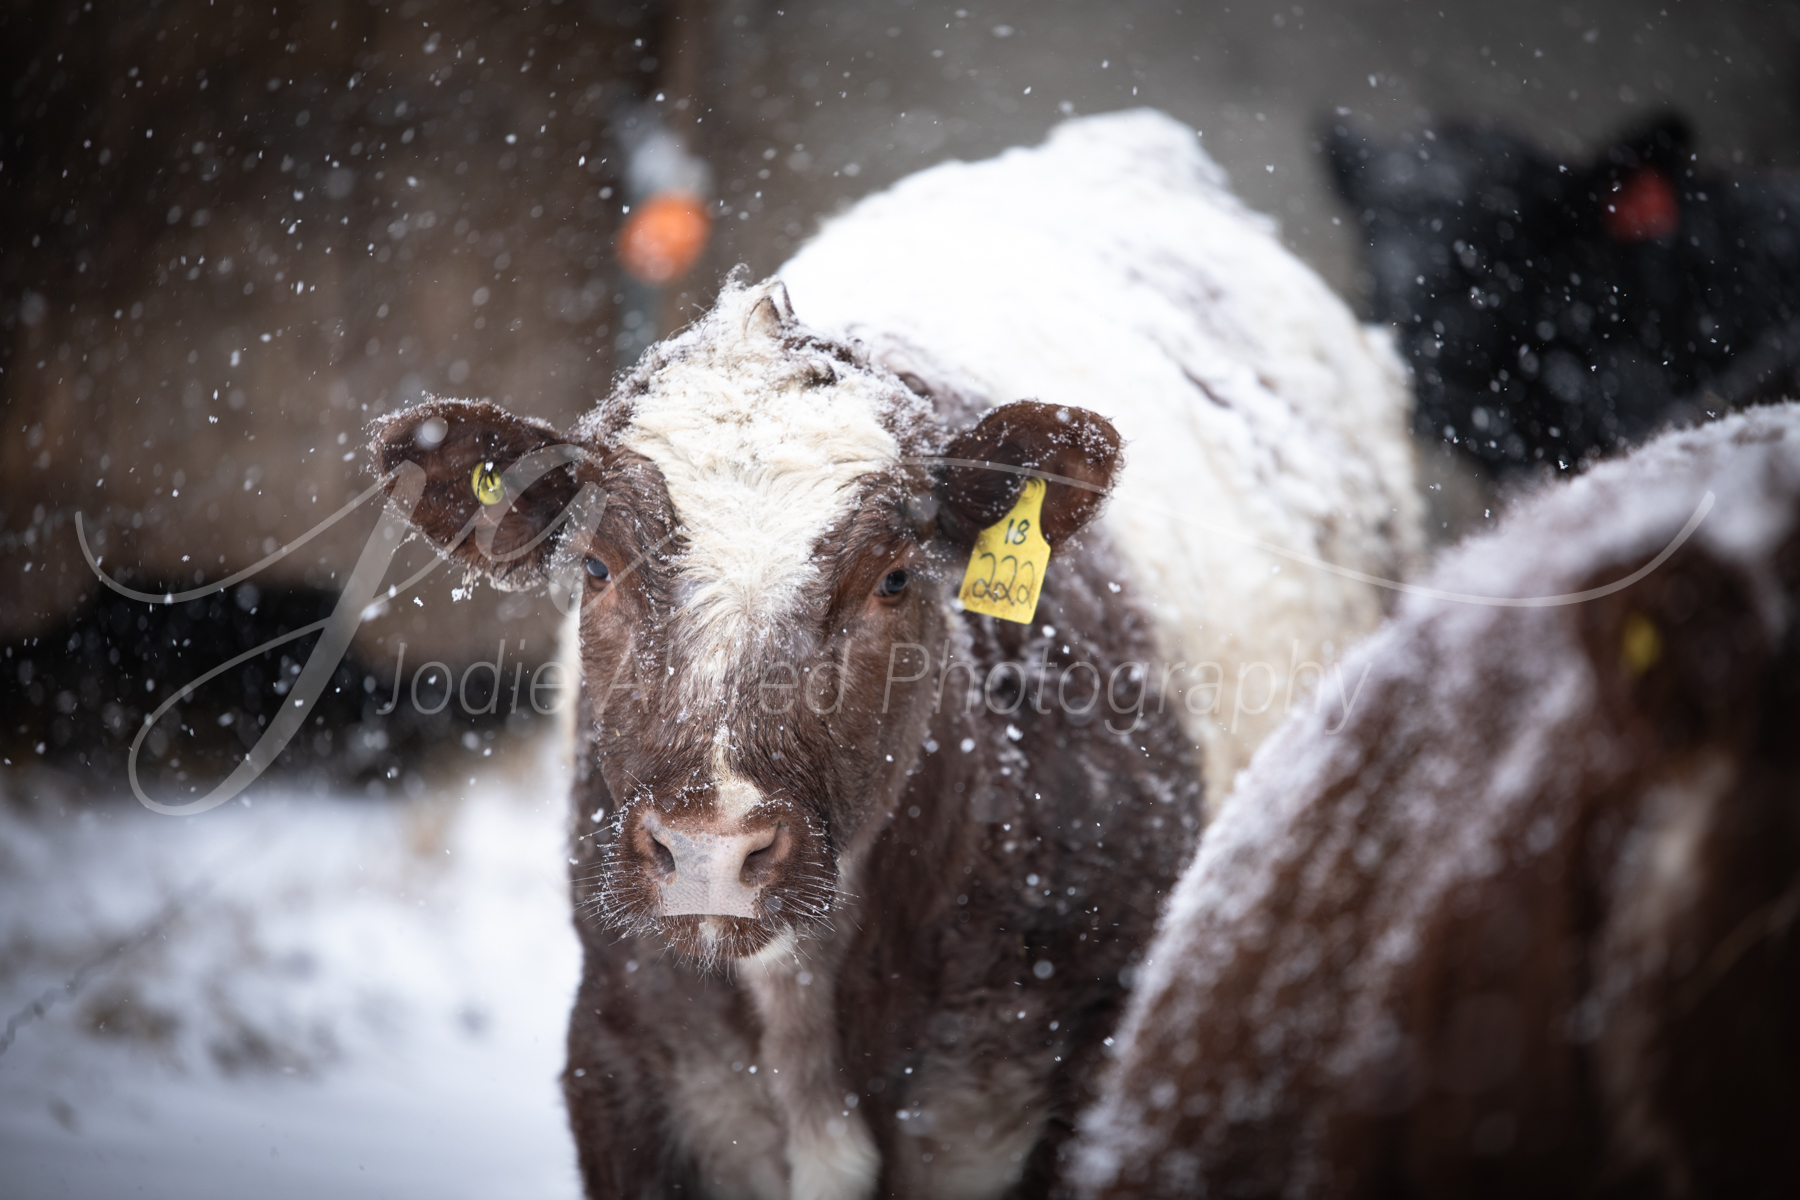 Jodie-Aldred-Photography-Cow-Steer-Calf-Cattle-Red-White-Snow-Winter-Barnyard-Ontario-Agriculture.jpg